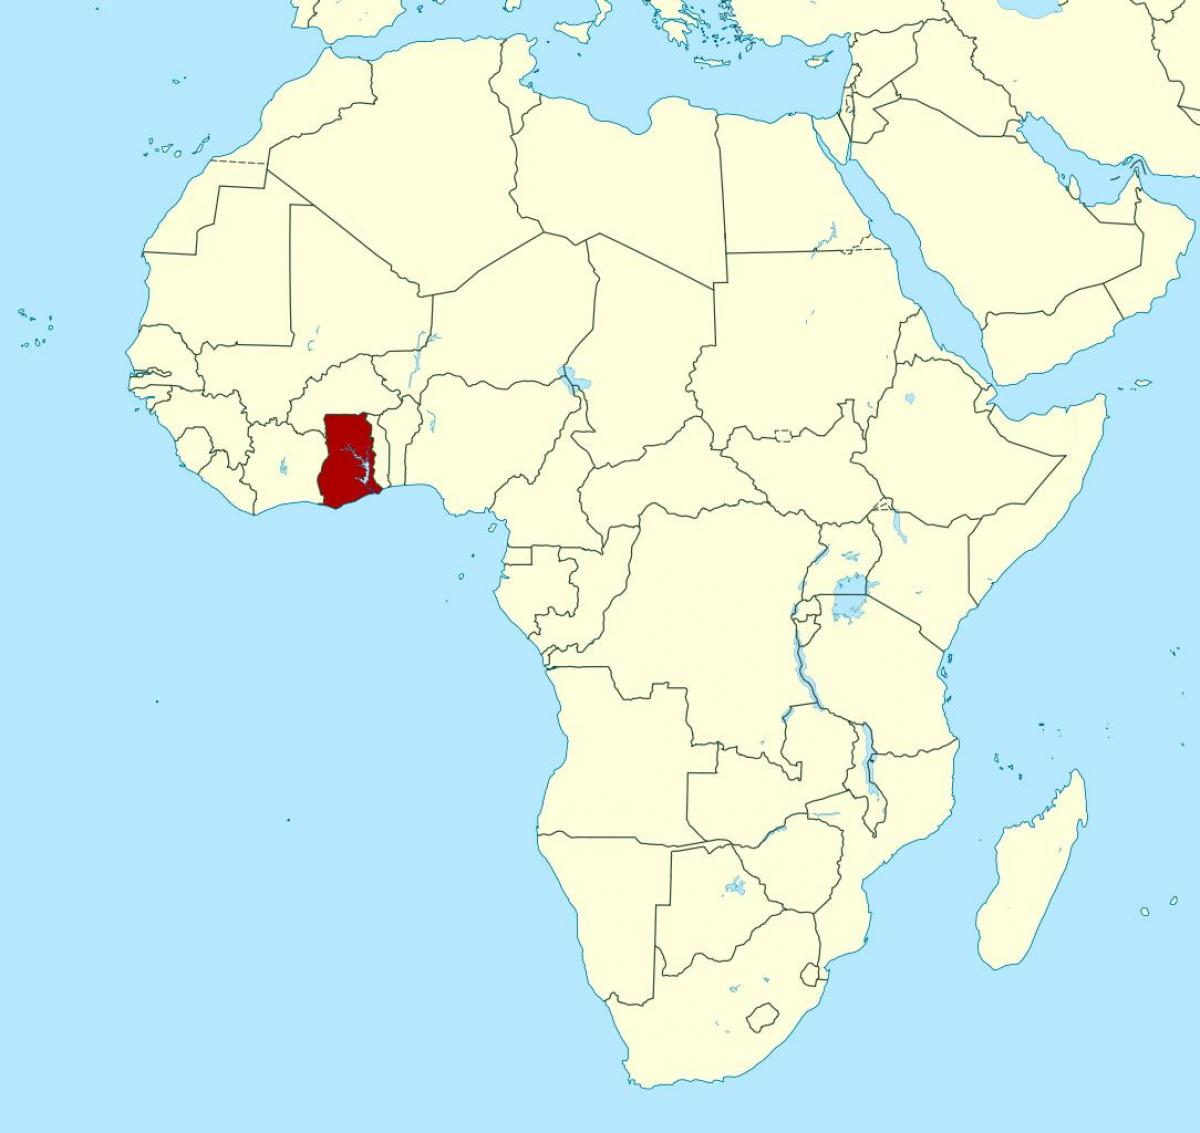 Map Of Africa Showing Ghana.Ghana Africa Map Map Of Africa Showing Ghana Western Africa Africa